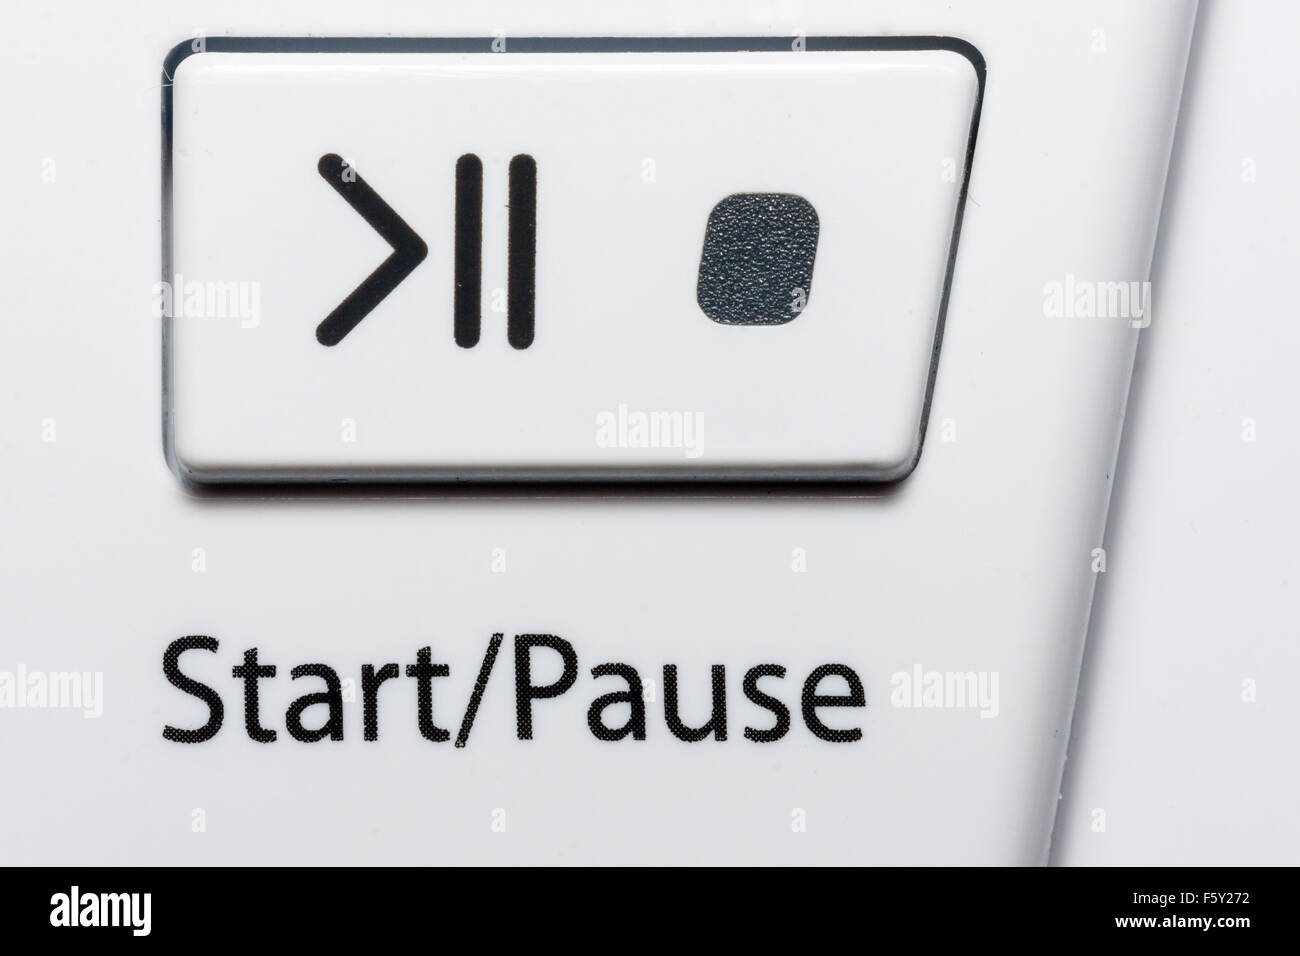 England. Tumble dryer switch, start and pause button with international symbol for start and pause, plus LED light, - Stock Image